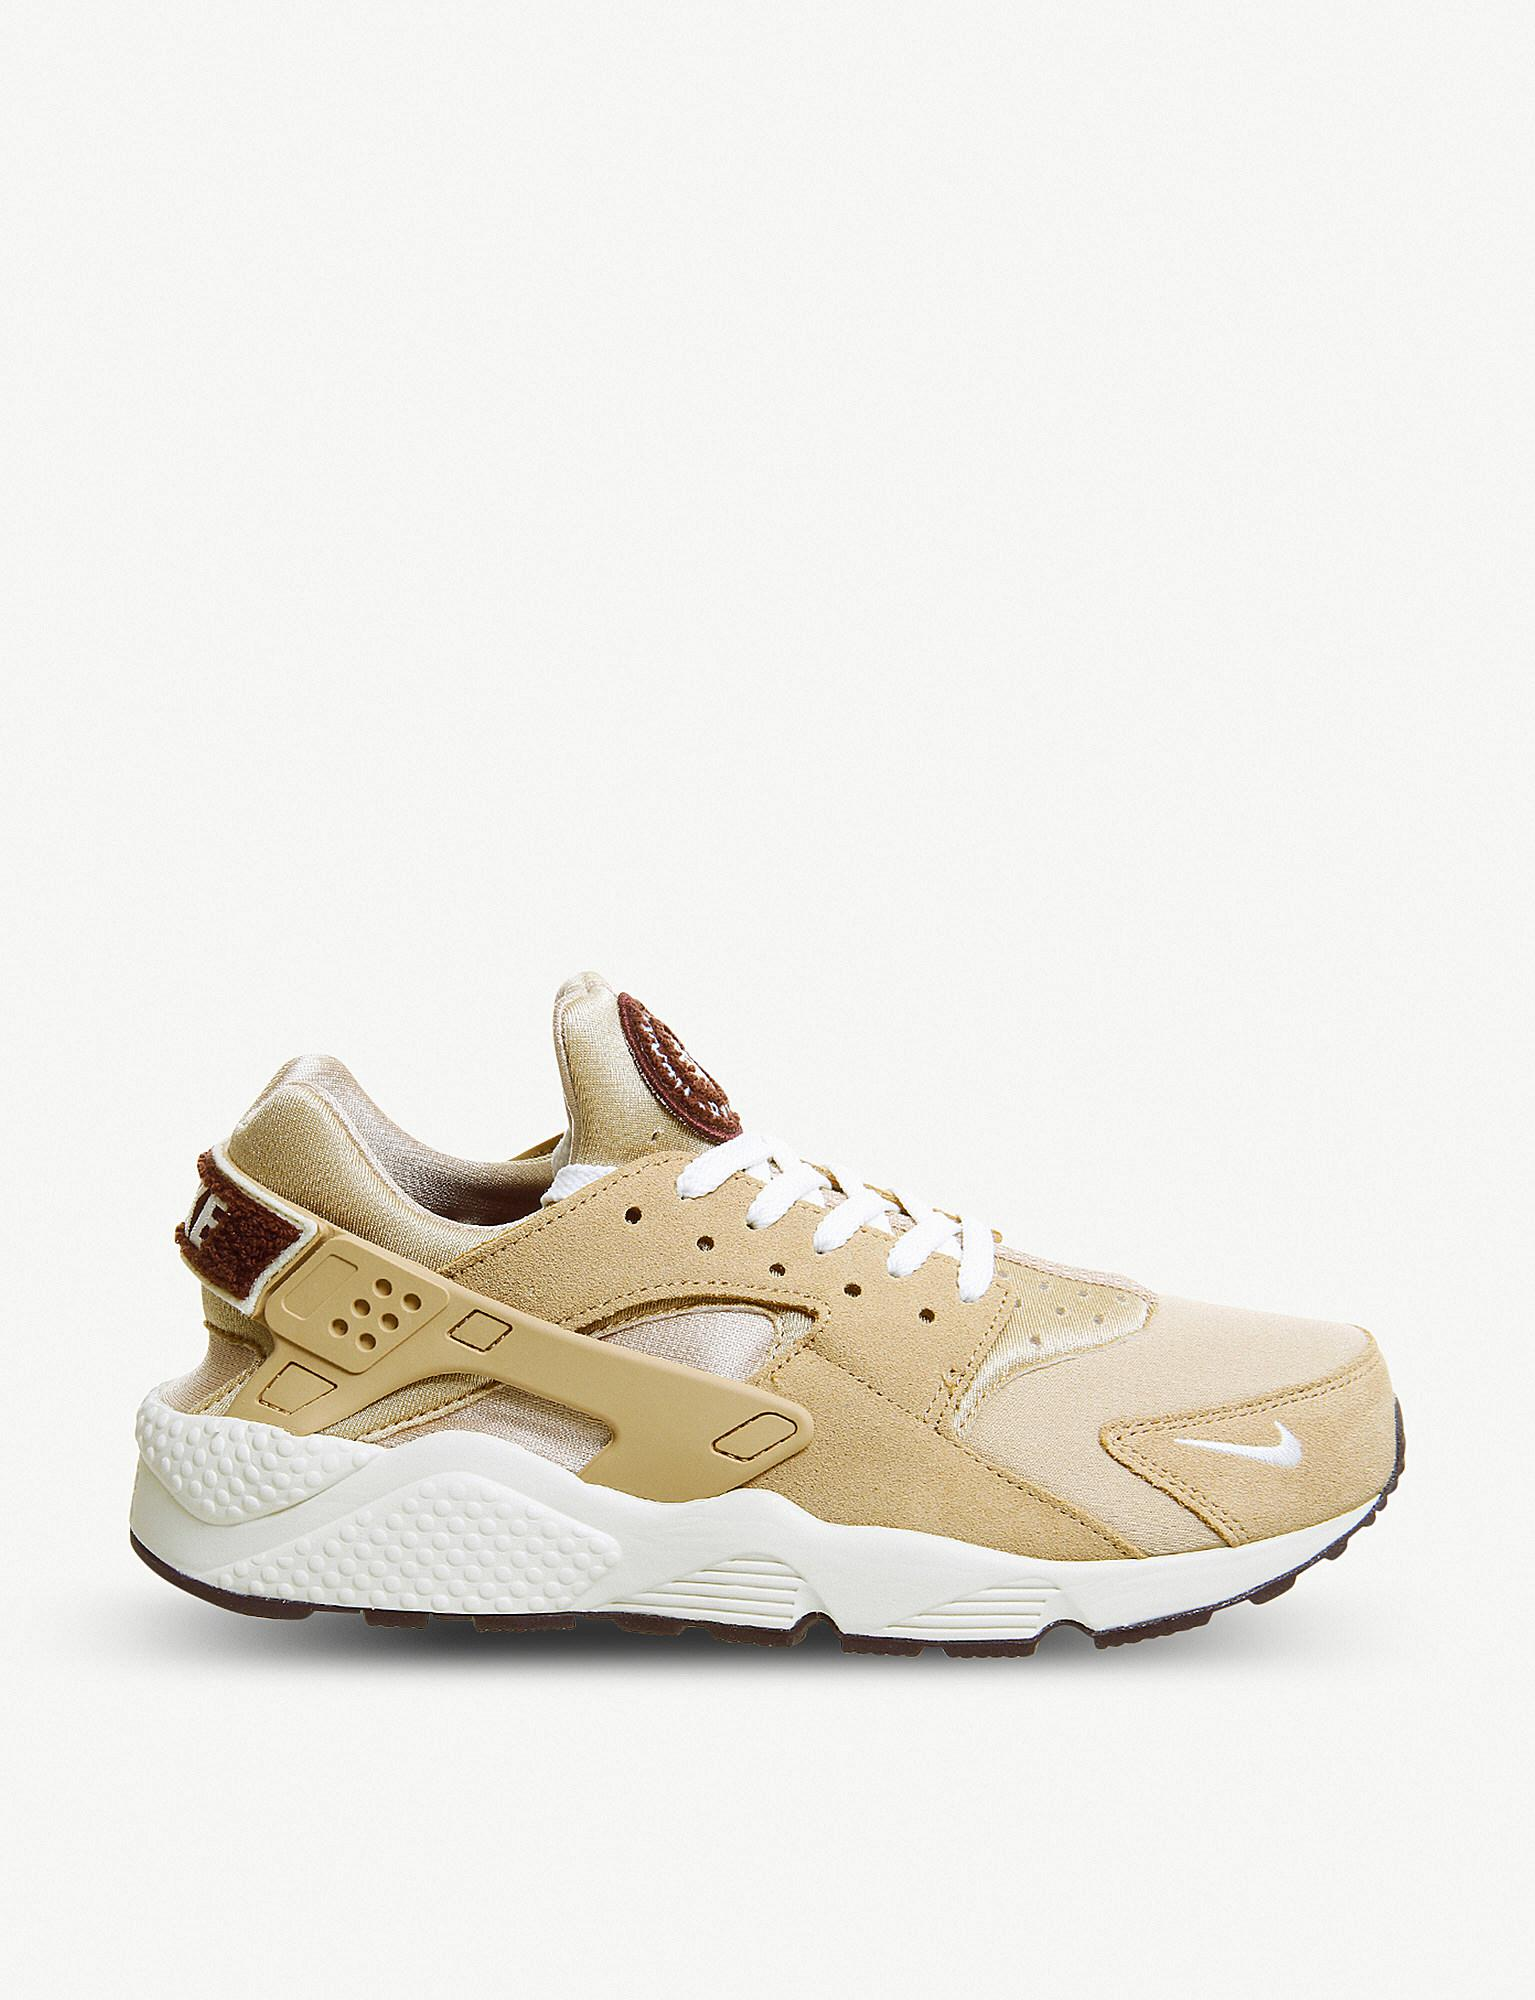 464fca4019ac8 Nike Air Huarache Suede And Neoprene Trainers in Natural for Men - Lyst